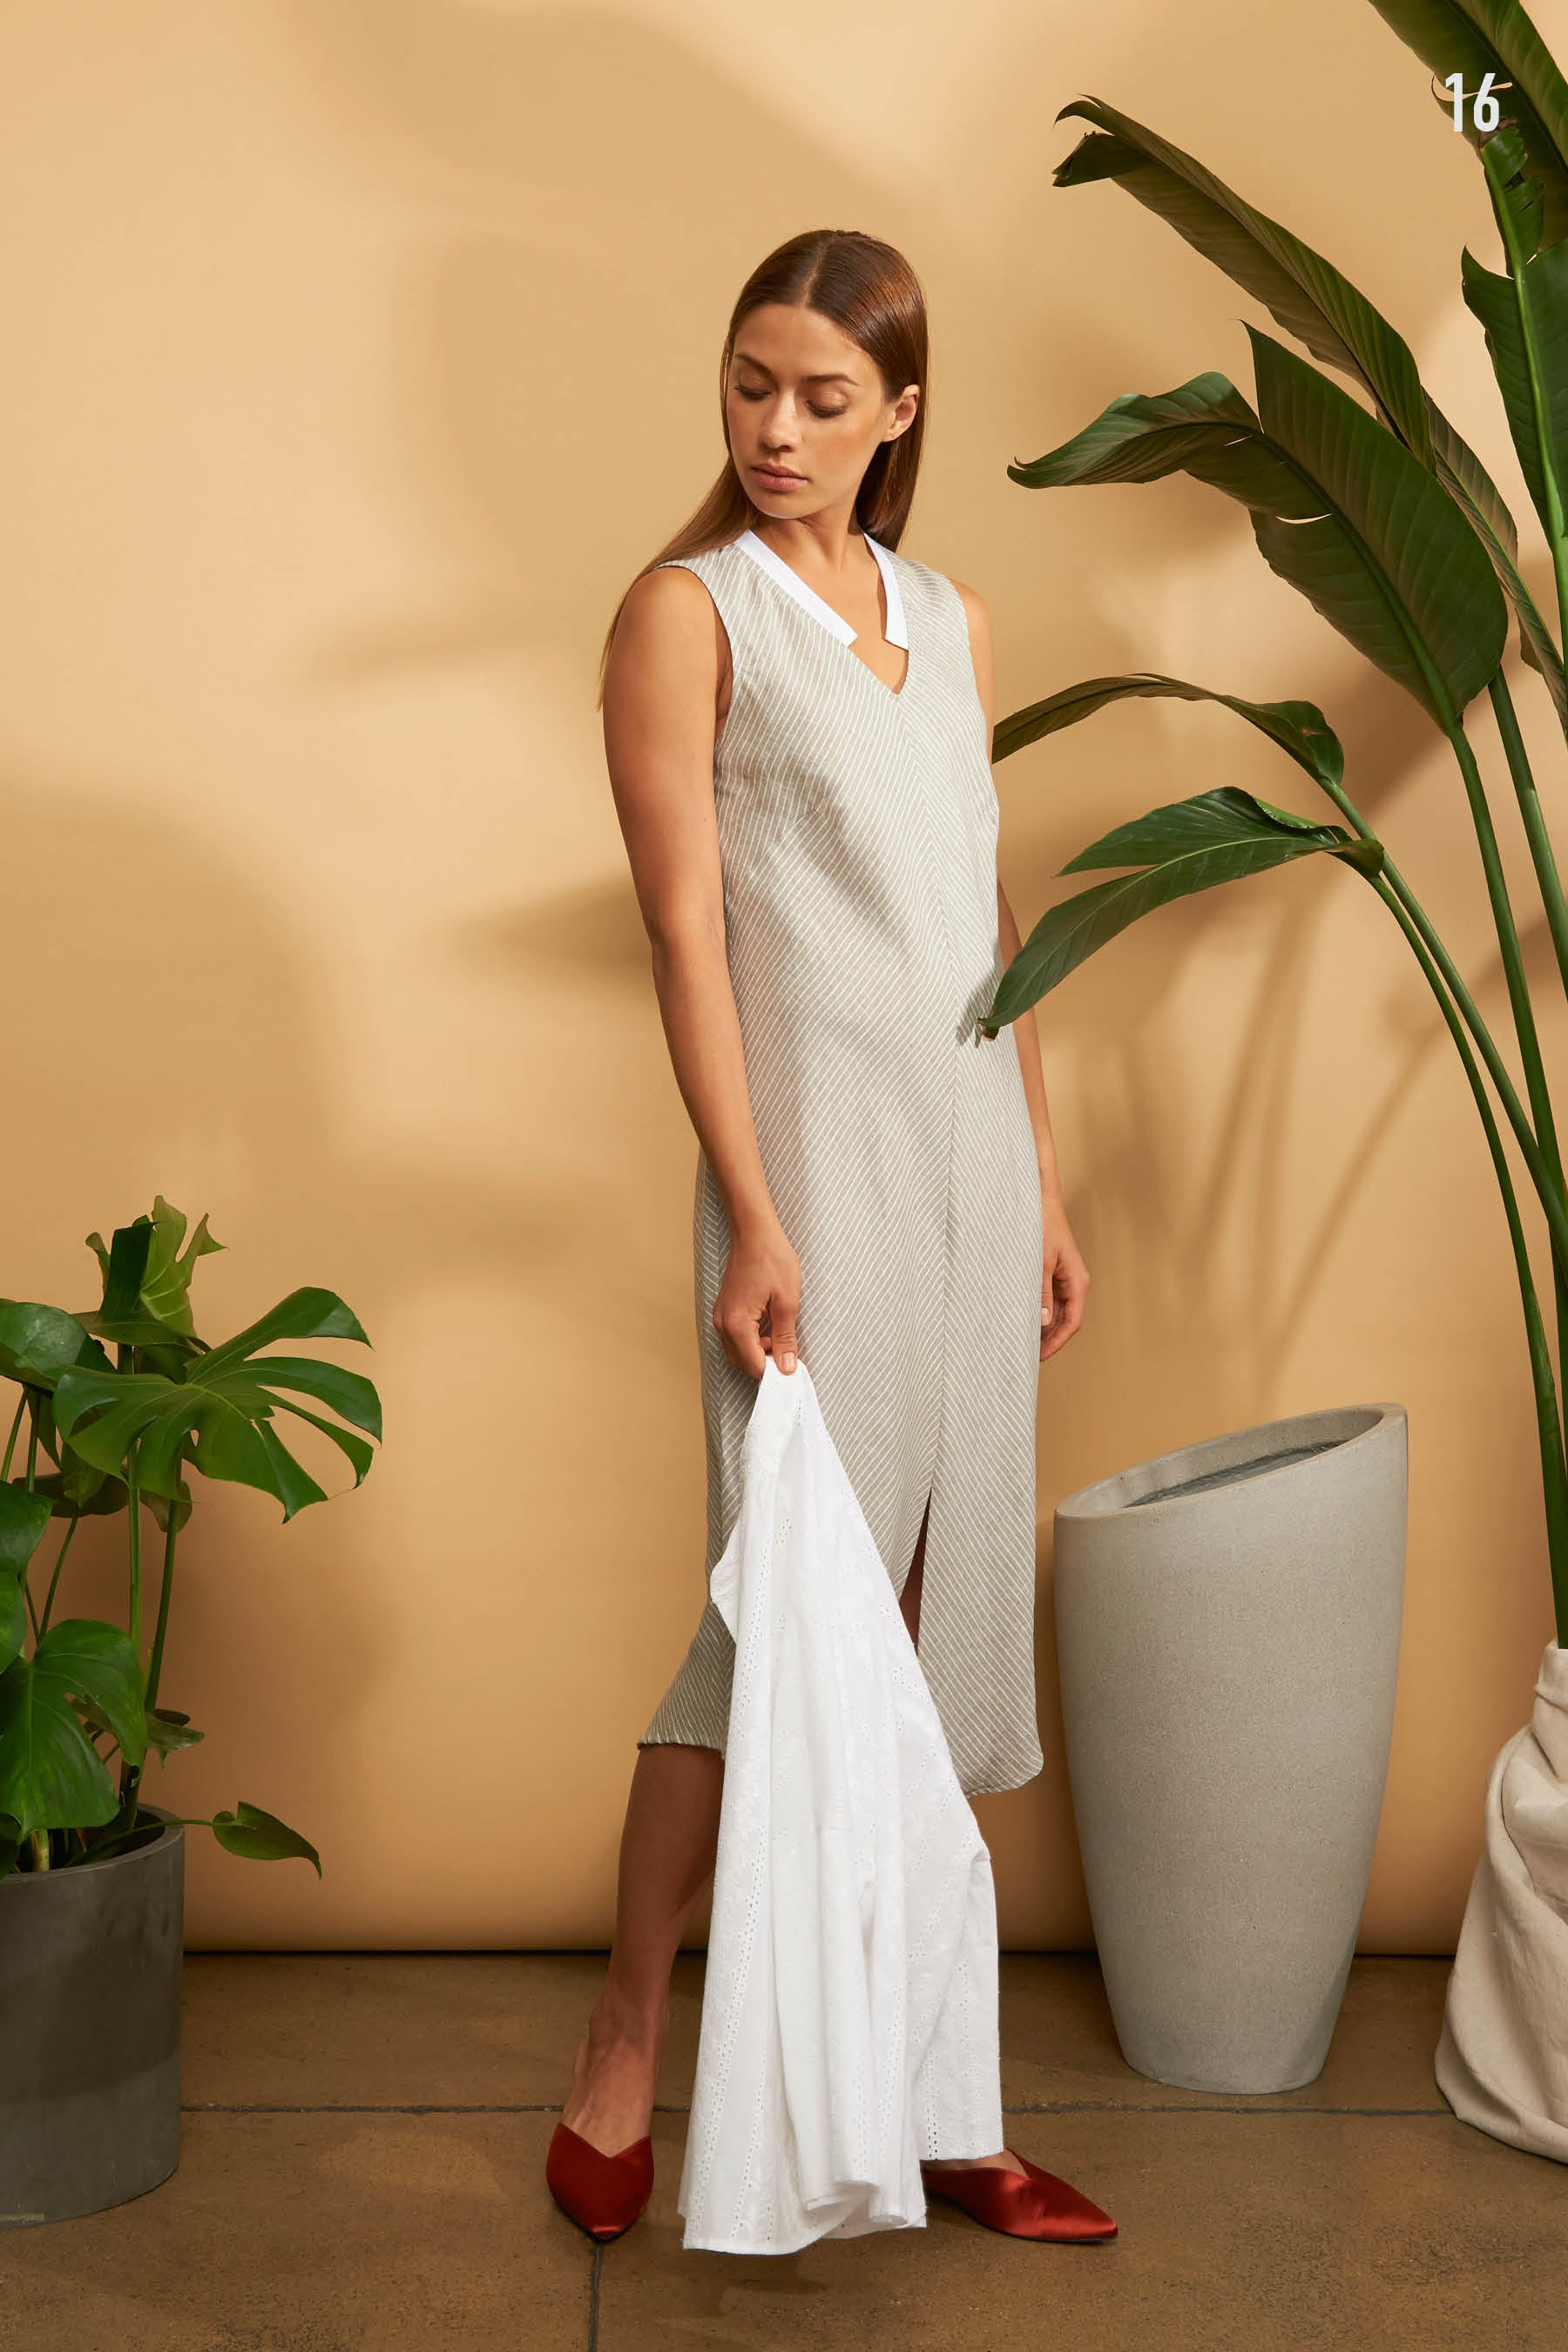 Kal Rieman Spring 2018 Lookbook Look 16